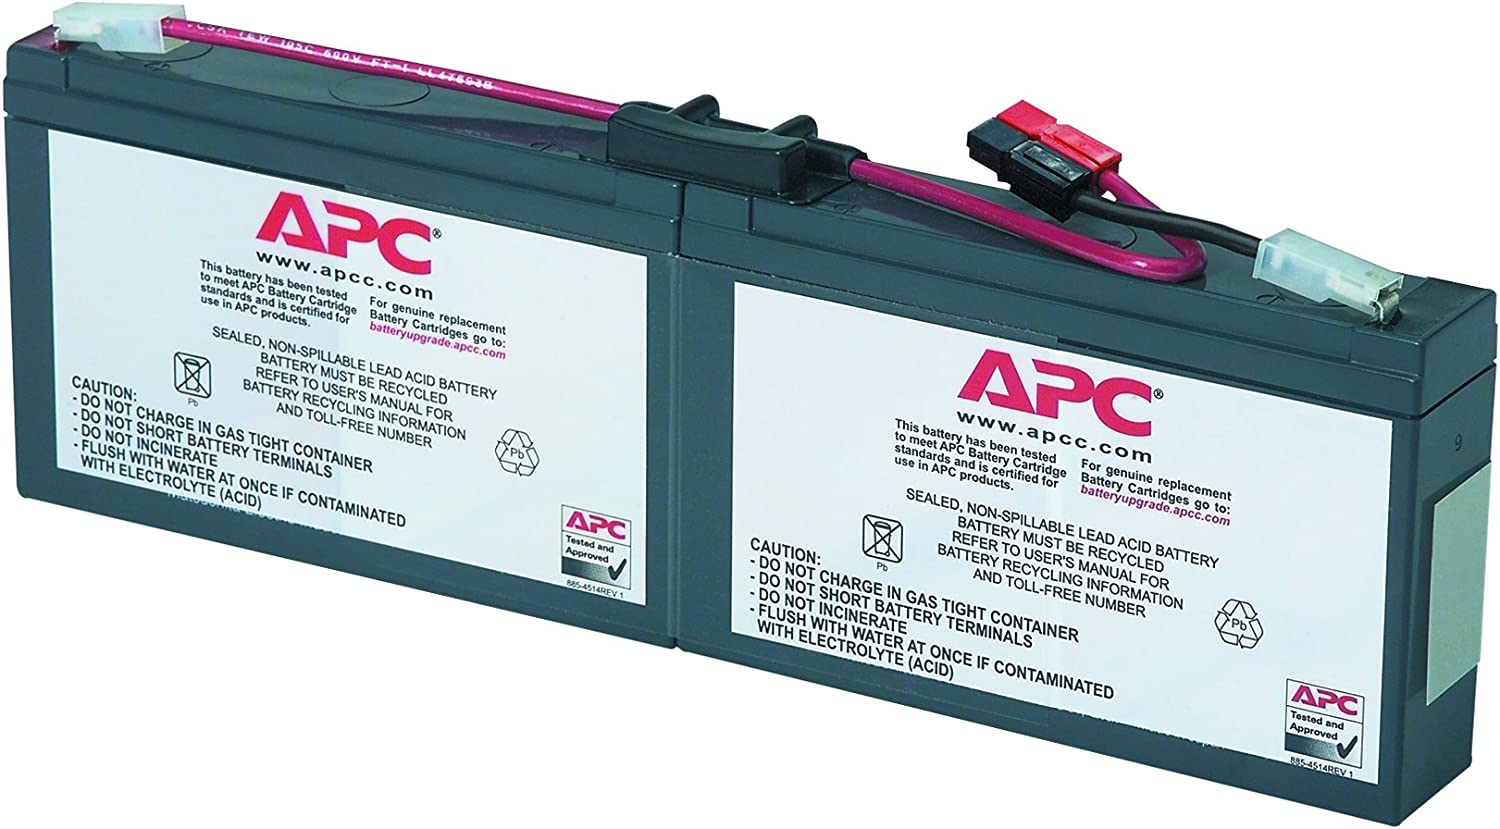 APC UPS Battery Replacement, RBC18, for APC Smart-UPS Models SC250RM1U, SC450RM1U and Select Others